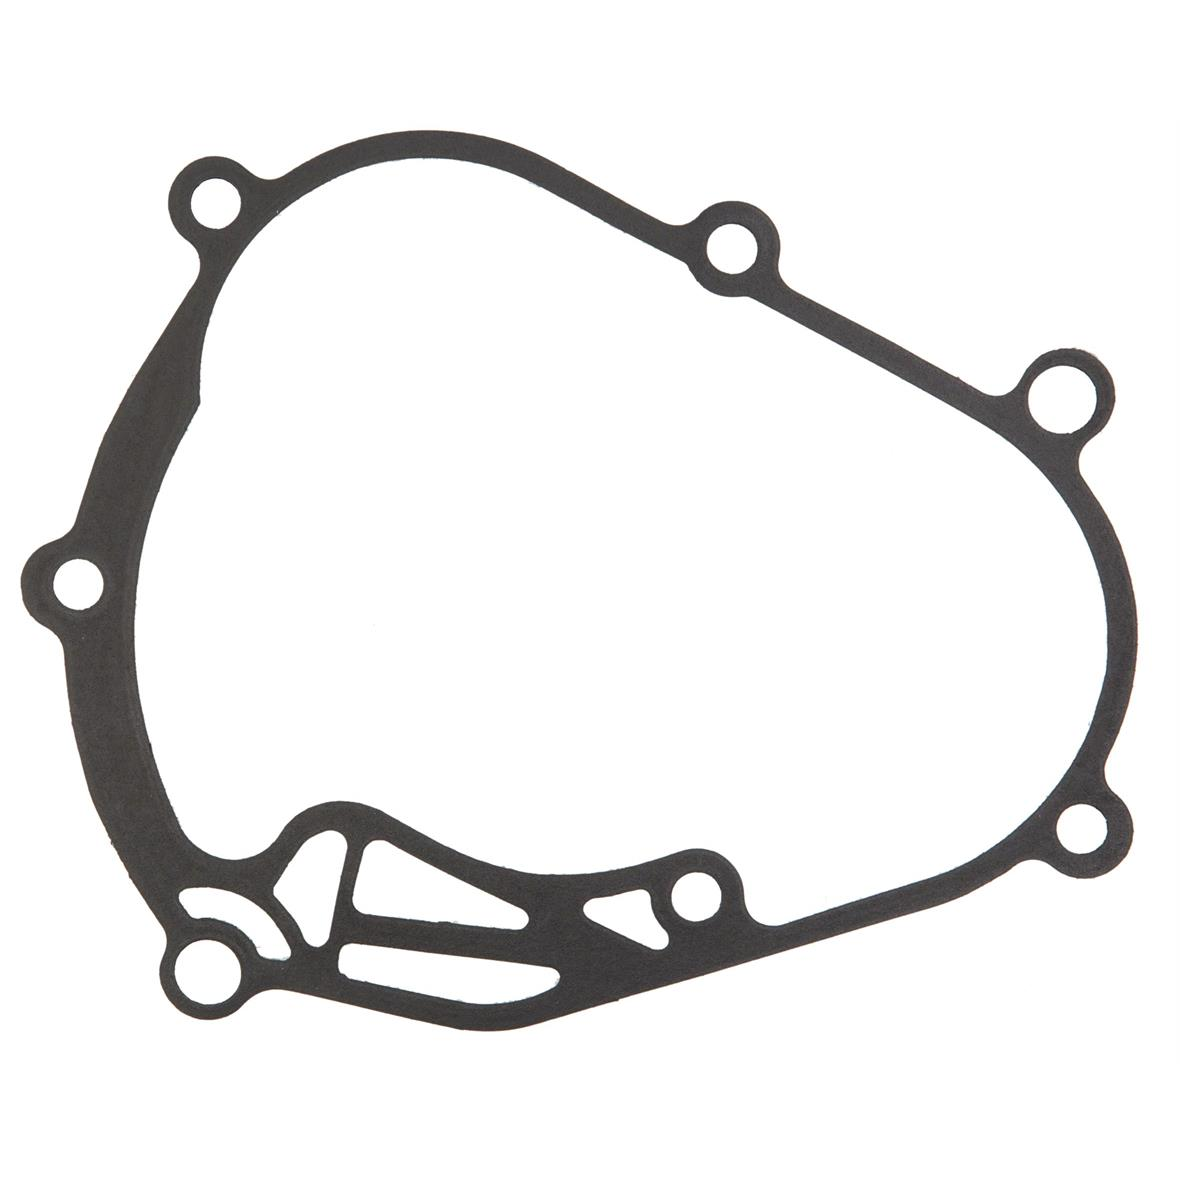 Product Image for 'Gasket PIAGGIO gear box coverTitle'